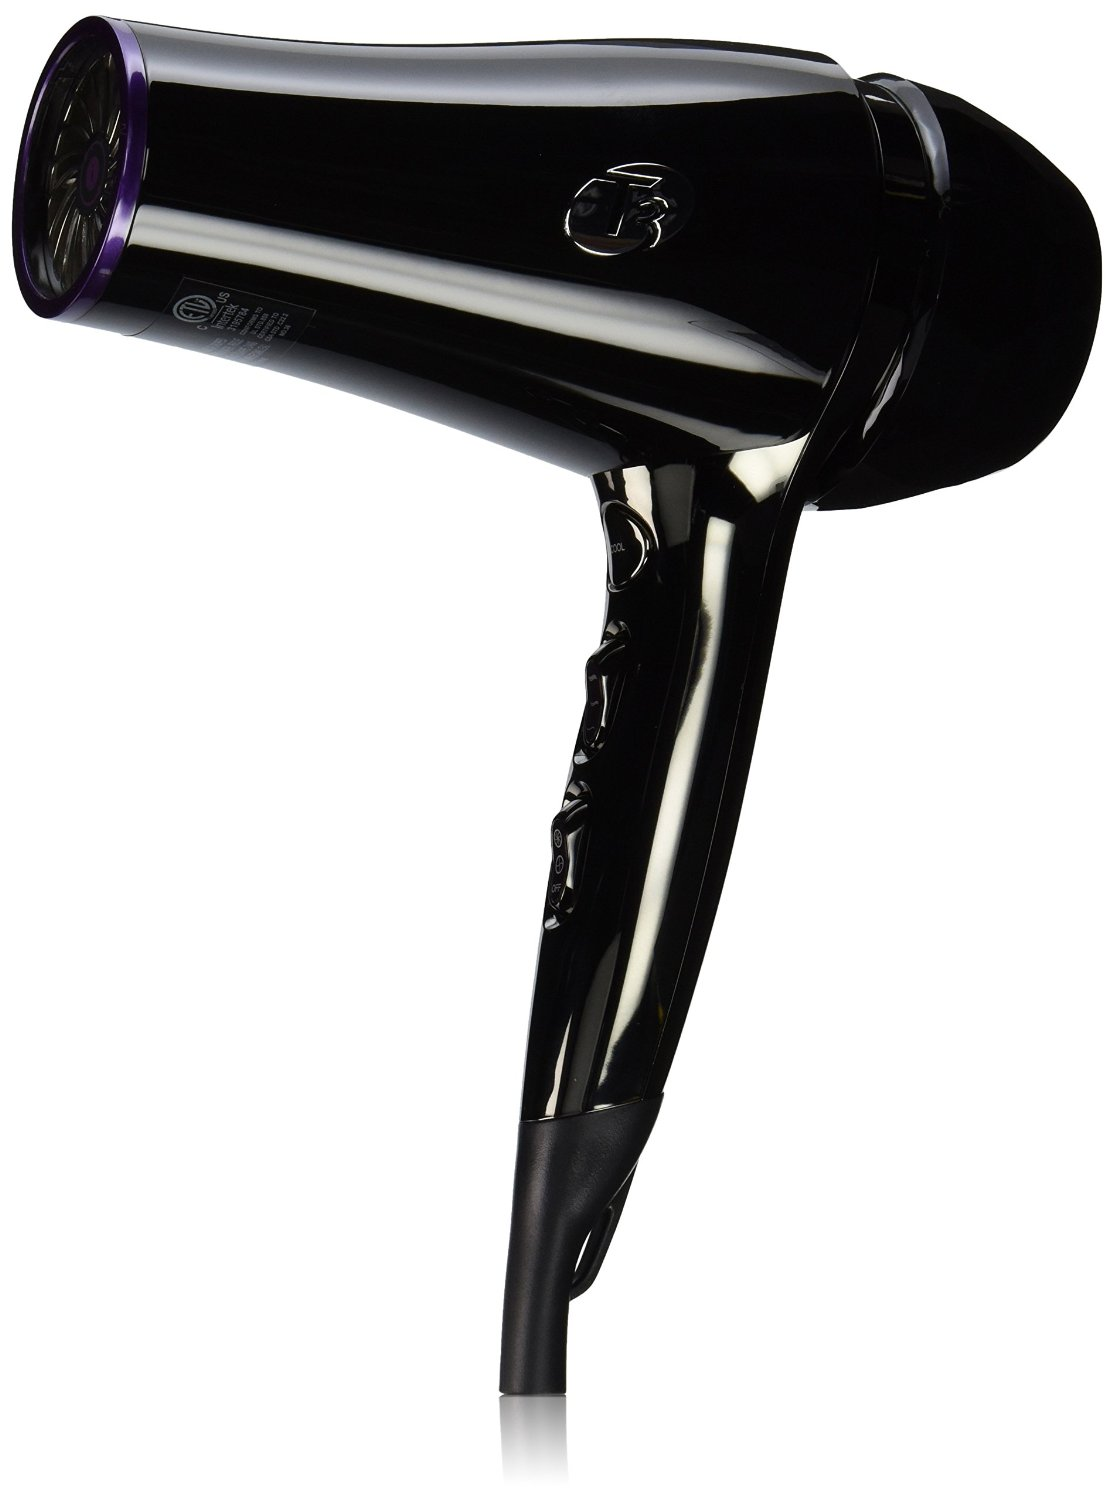 T3 Featherweight Luxe 2i Review Should You Buy This T3 Hair Dryer